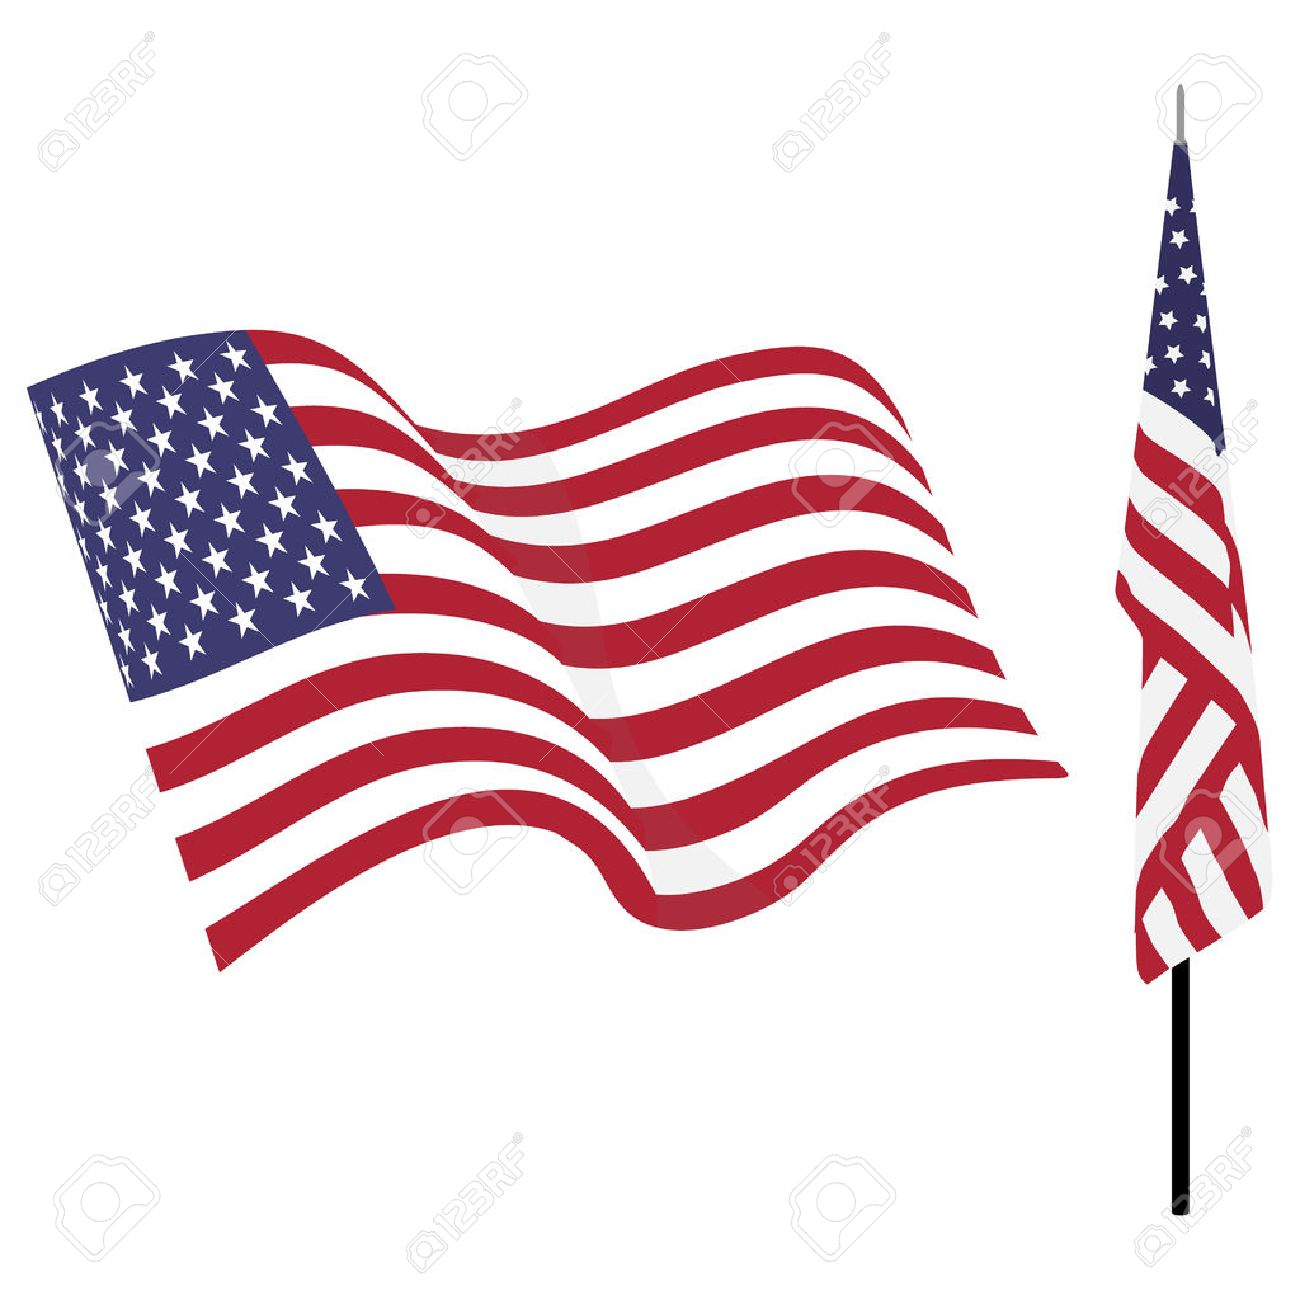 Waving american flag and flag on stand. Usa flag vector set isolated on white - 61723739